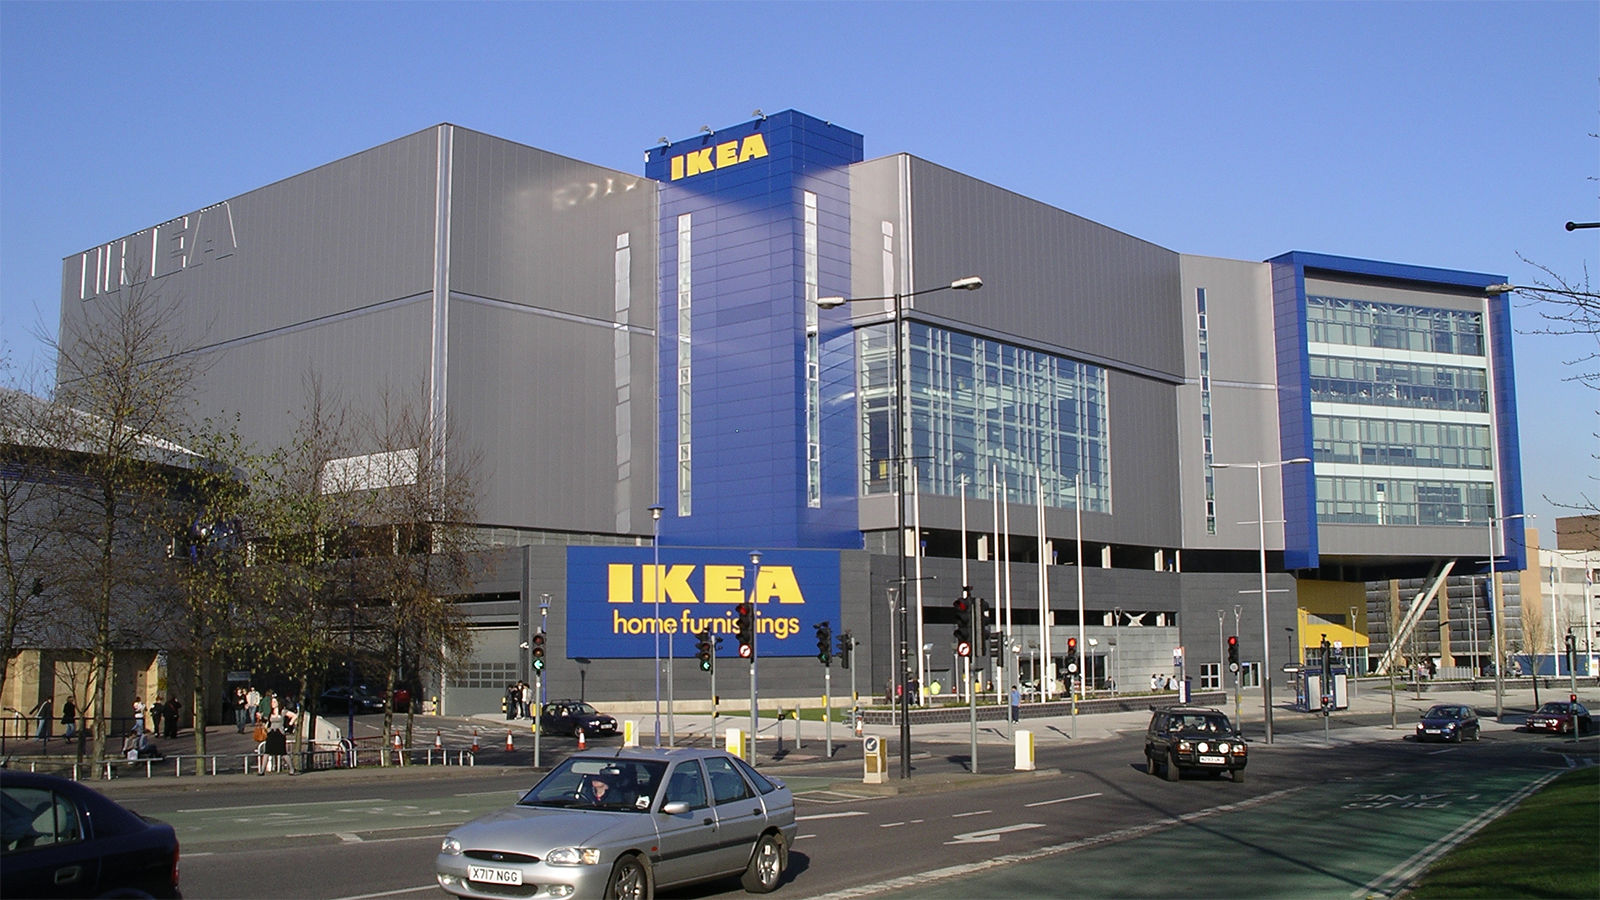 Coventry's IKEA prior to its closure in March 2020